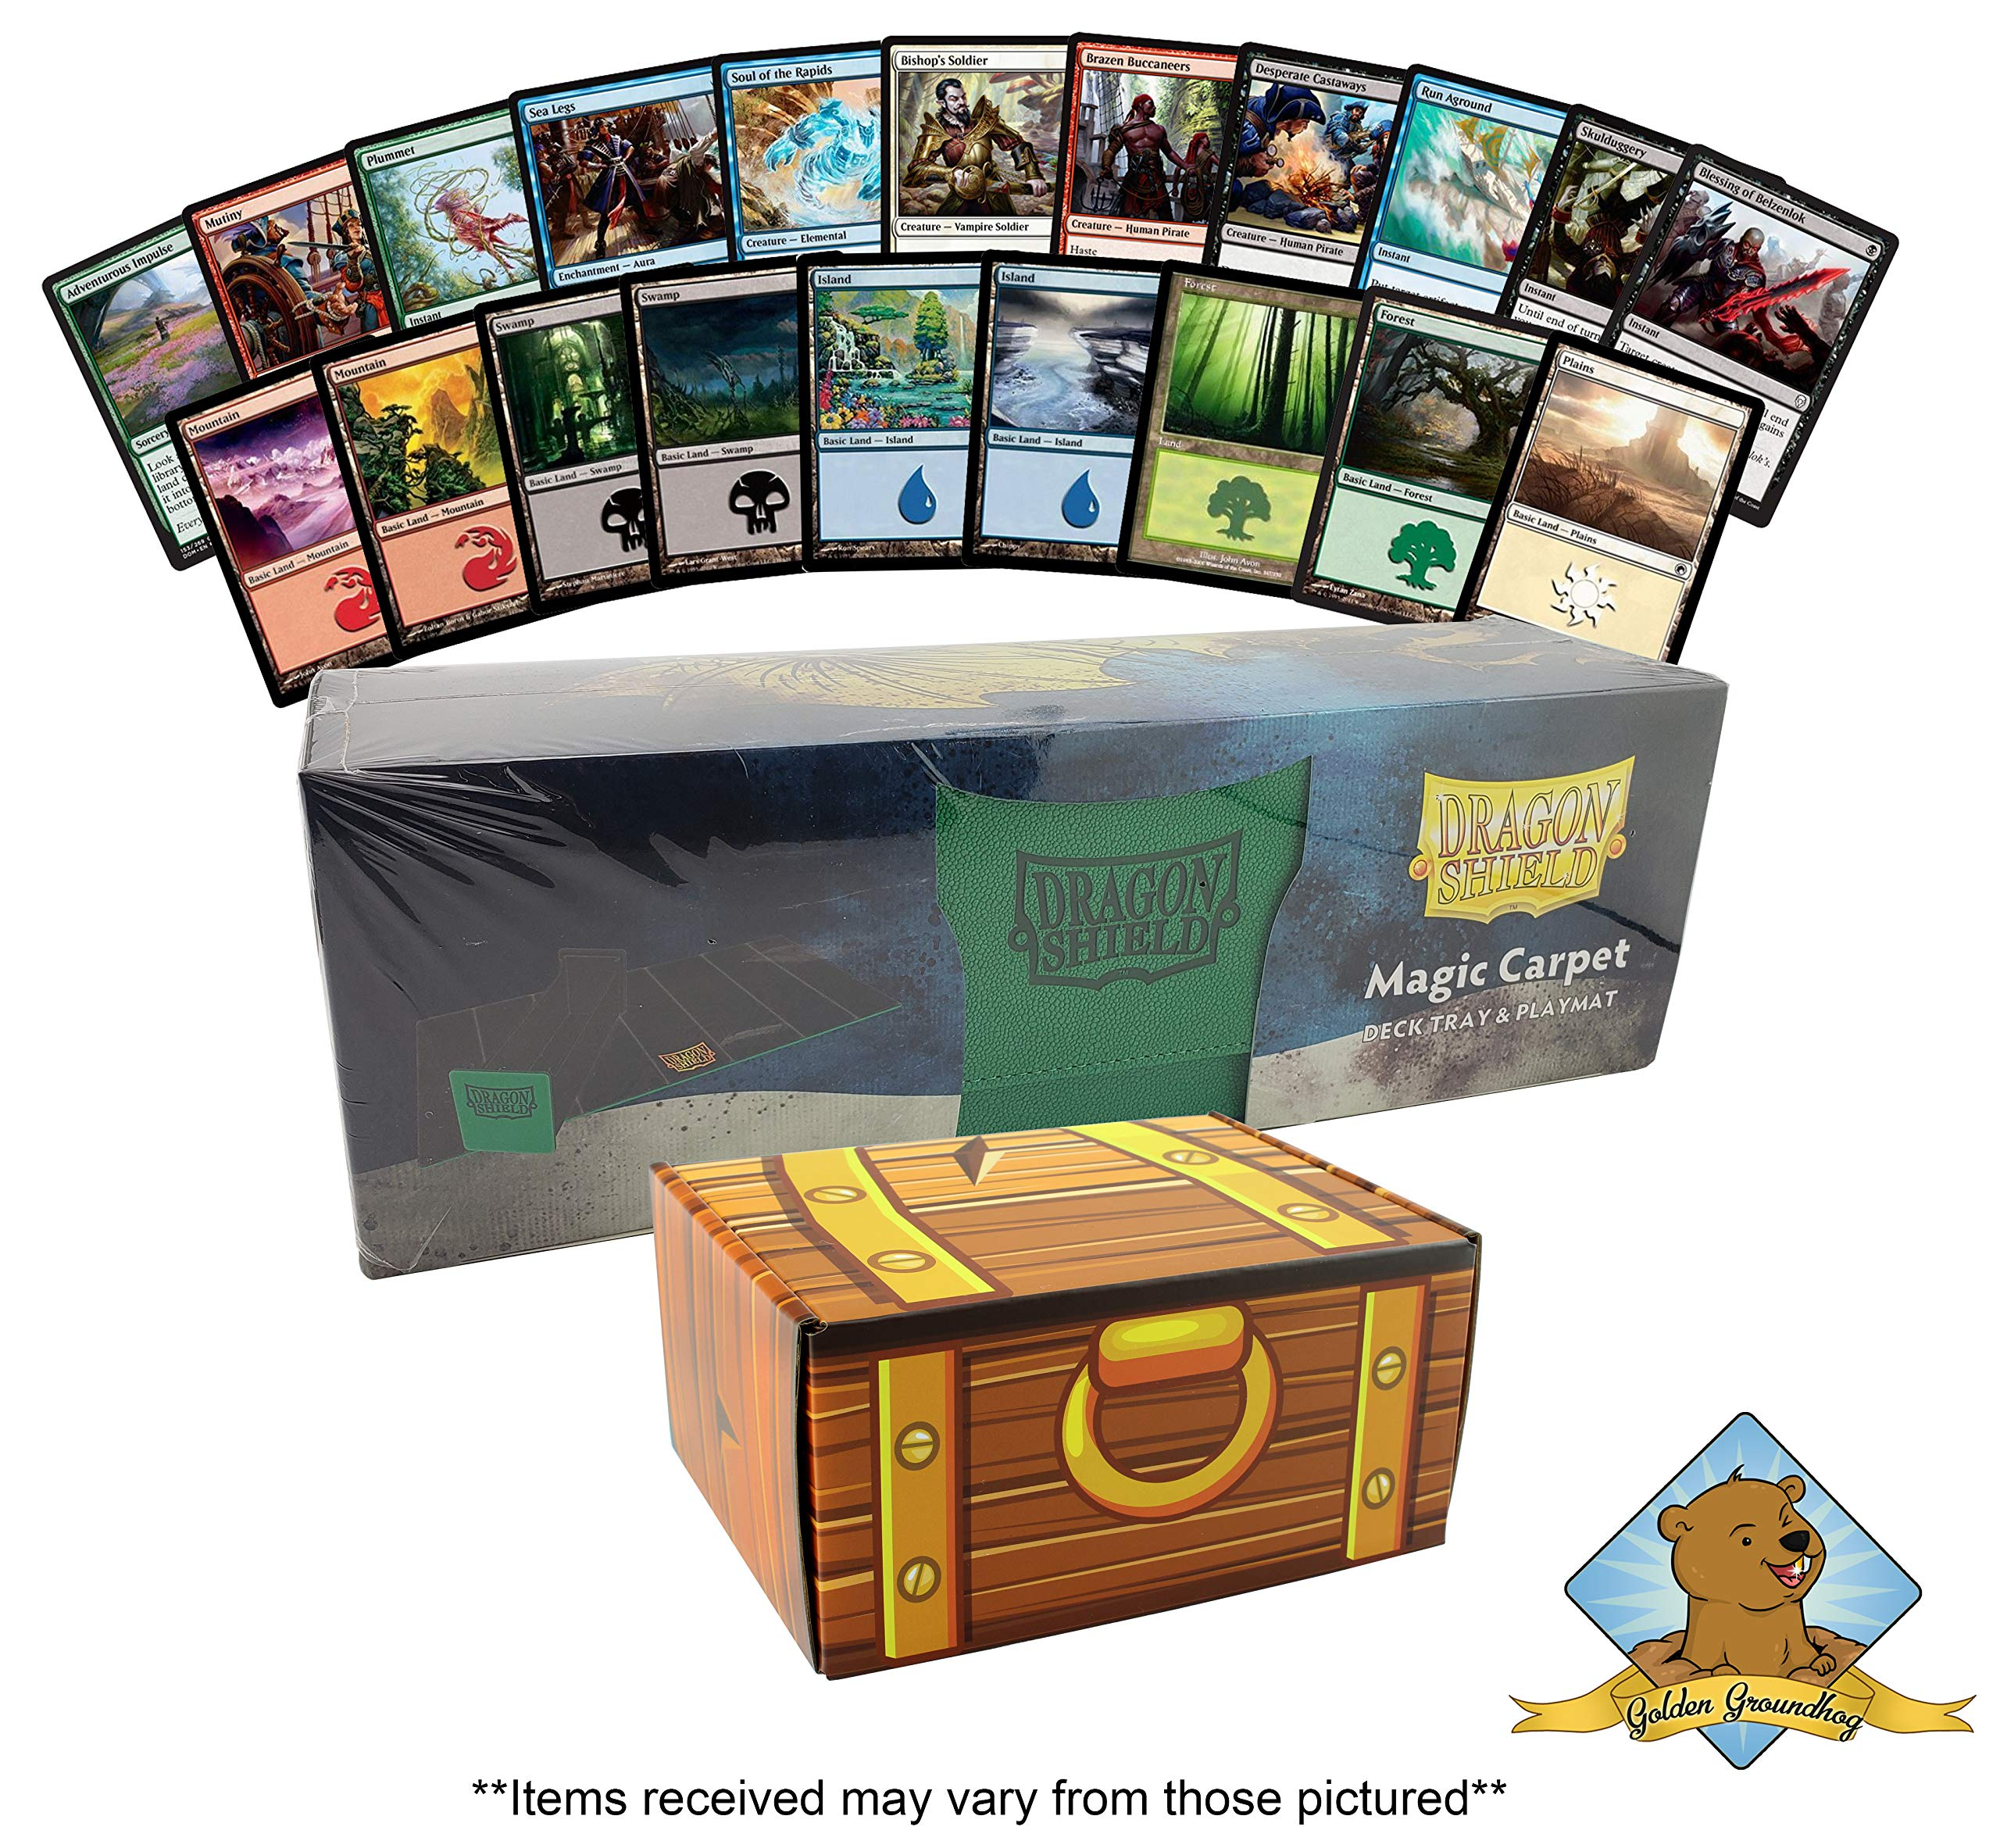 1000 Assorted Magic: The Gathering Card Cube Collection Lot - Featuring 200 Lands - 800 Common/Uncommon Cards! 1 Dragon Shield Deck Tray & Playmat For Protection! Comes in Golden Groundhog Treasure Ch